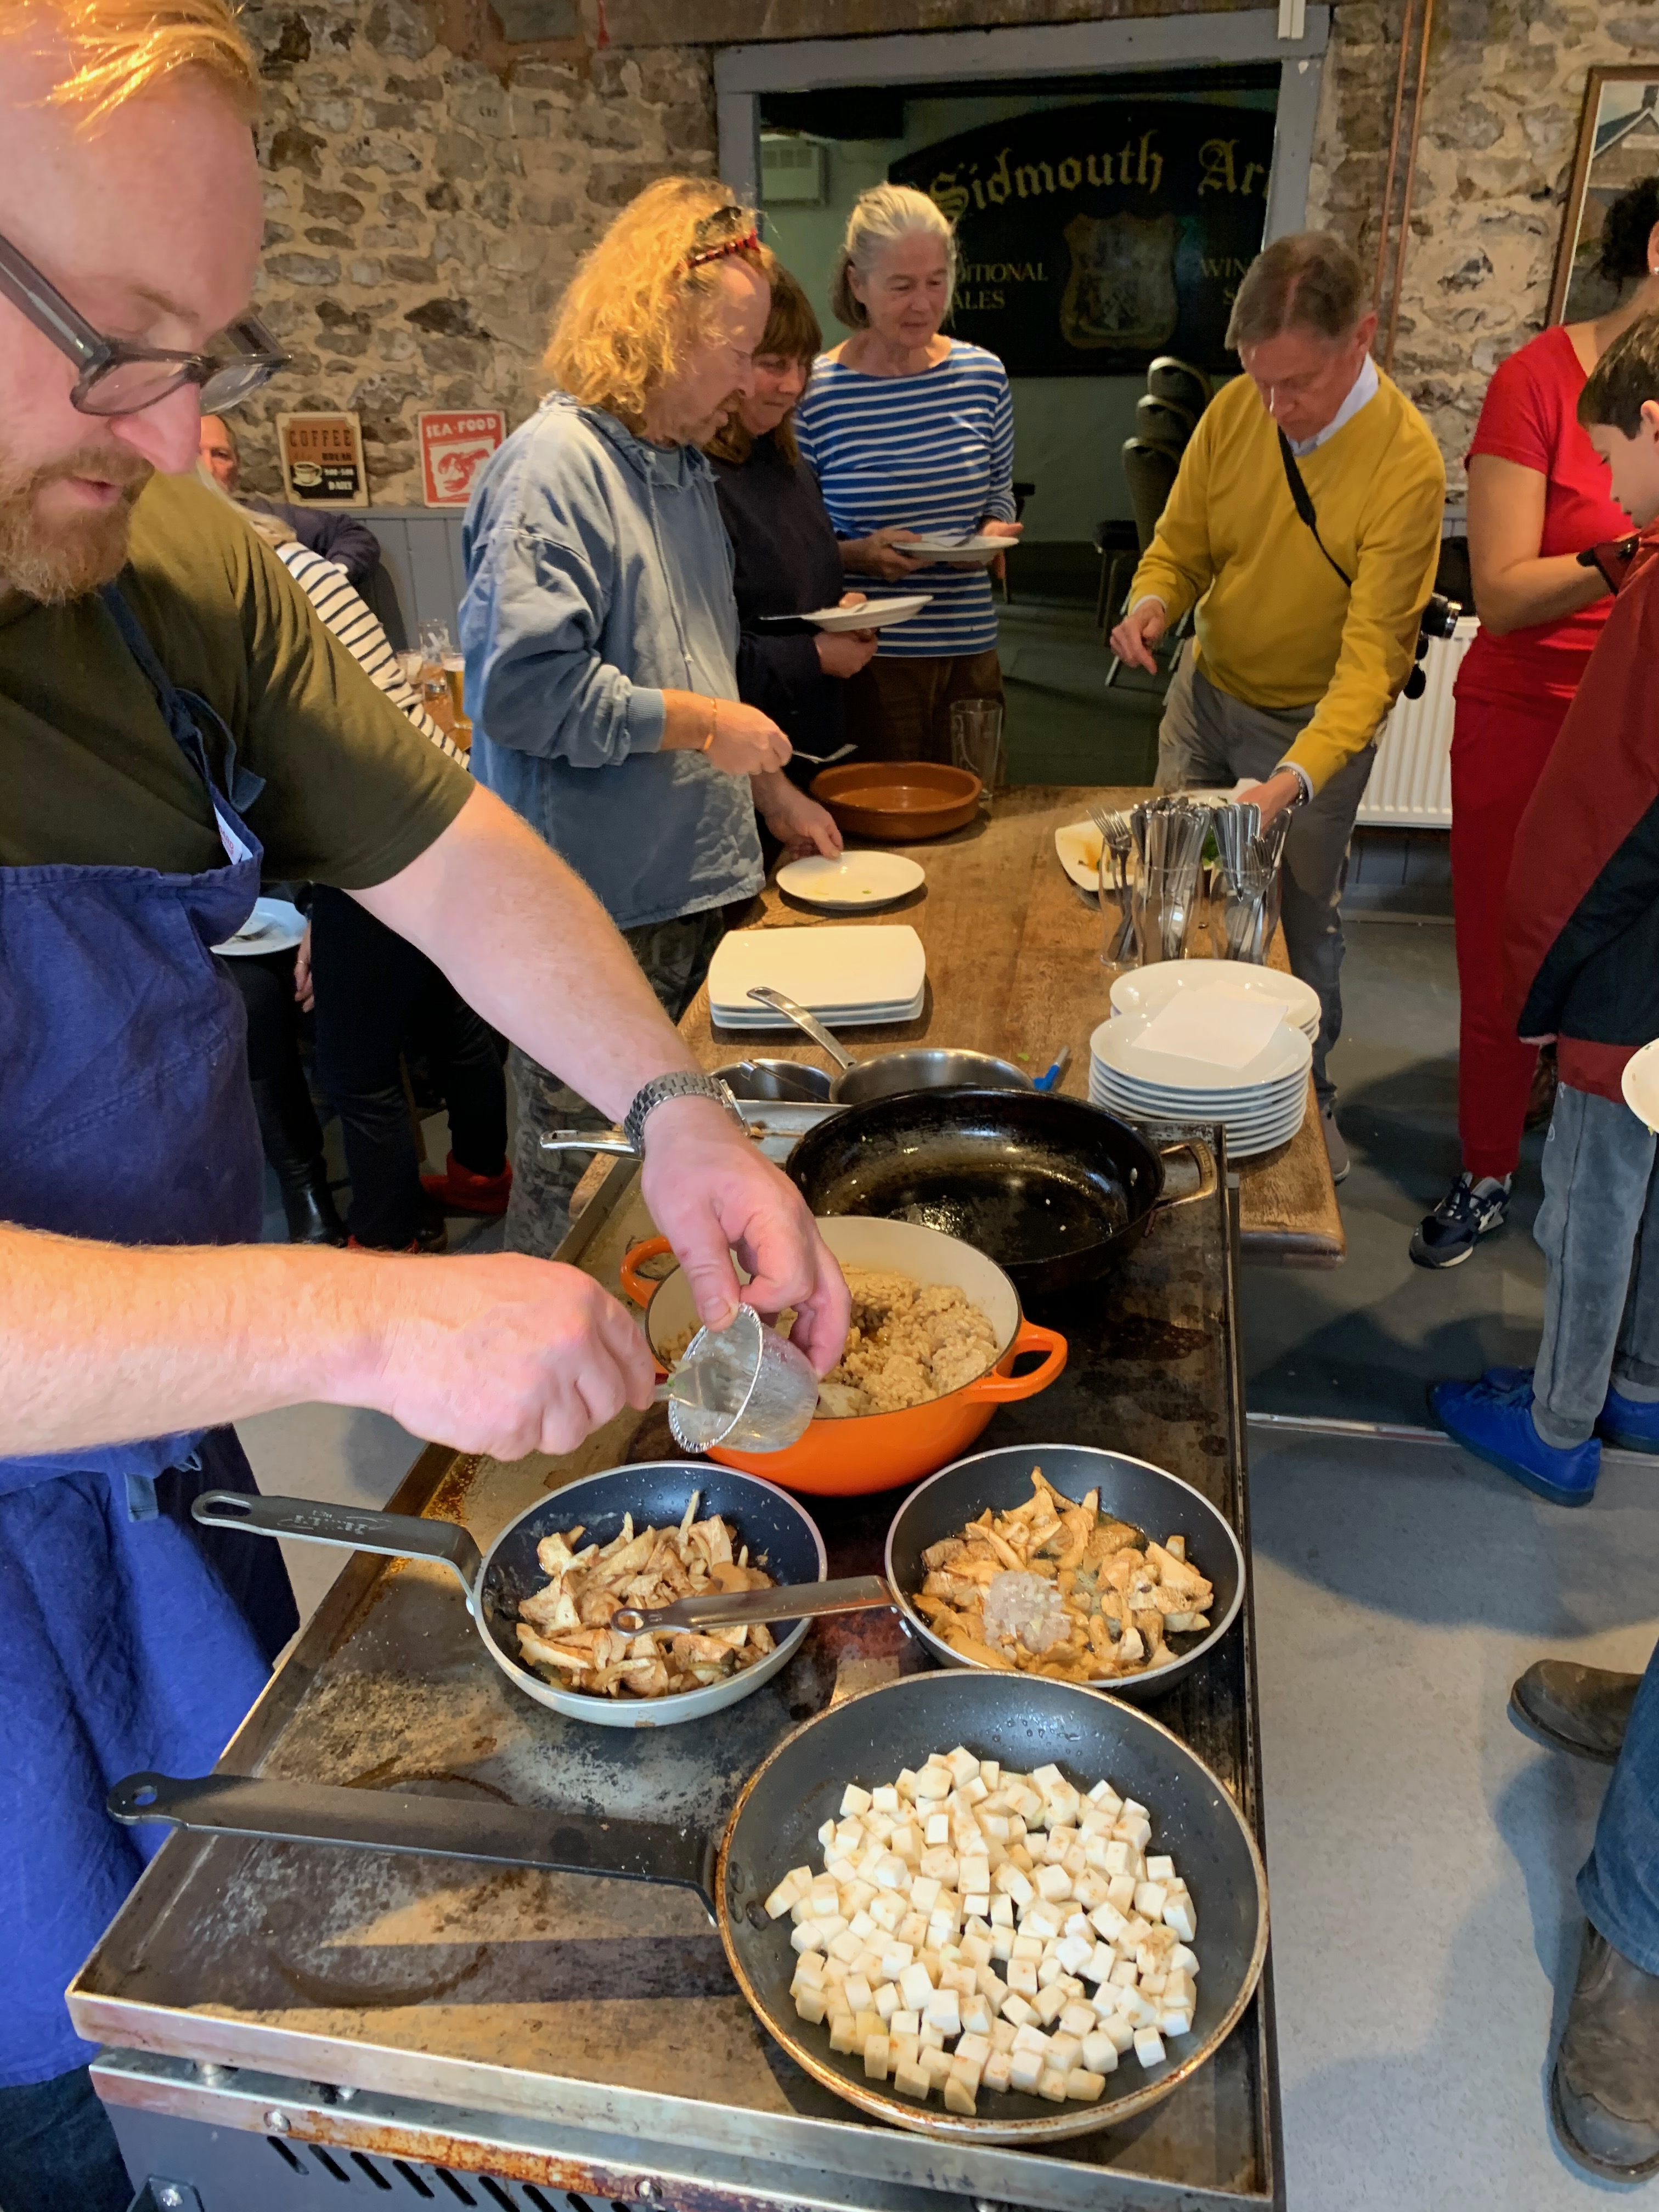 People gather around a table with pots and pans containing a variety of mushroom dishes